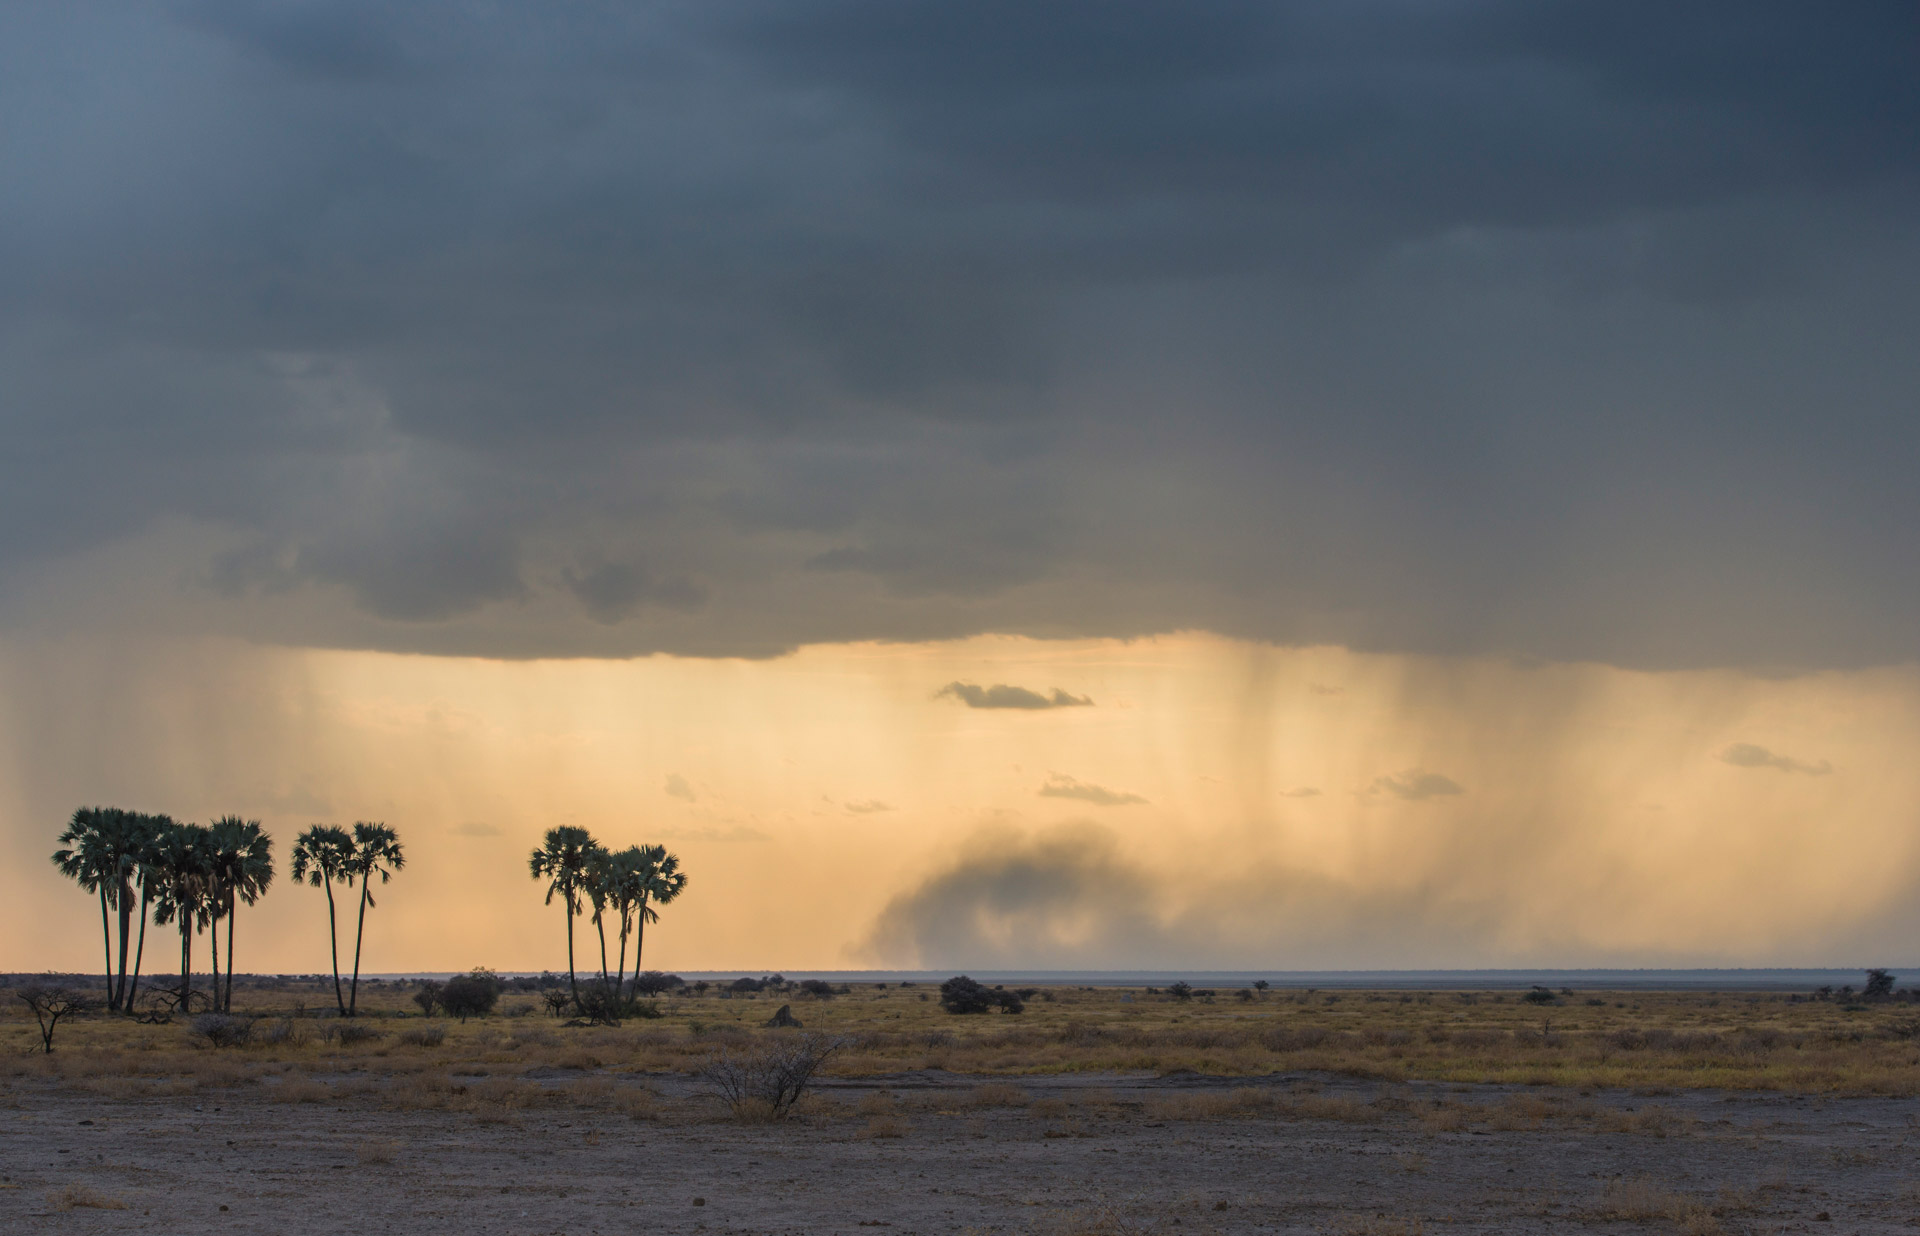 Thundershower over Fishers Pan in Etosha National Park